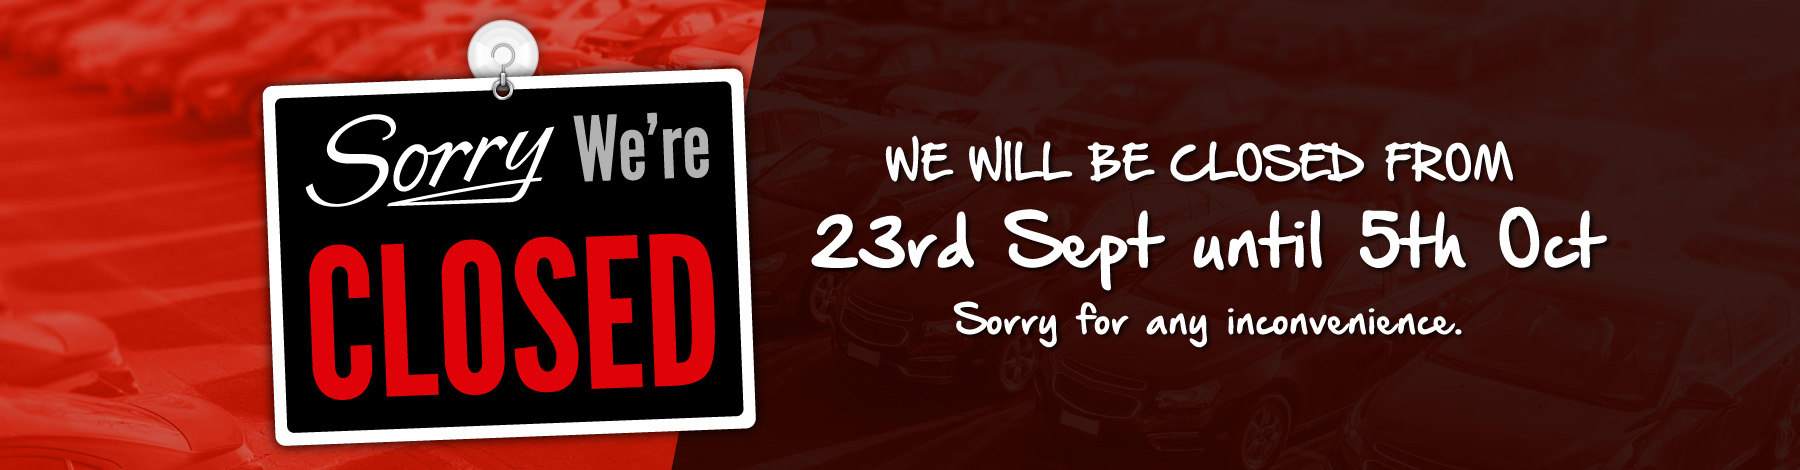 banner-closed-sept2017